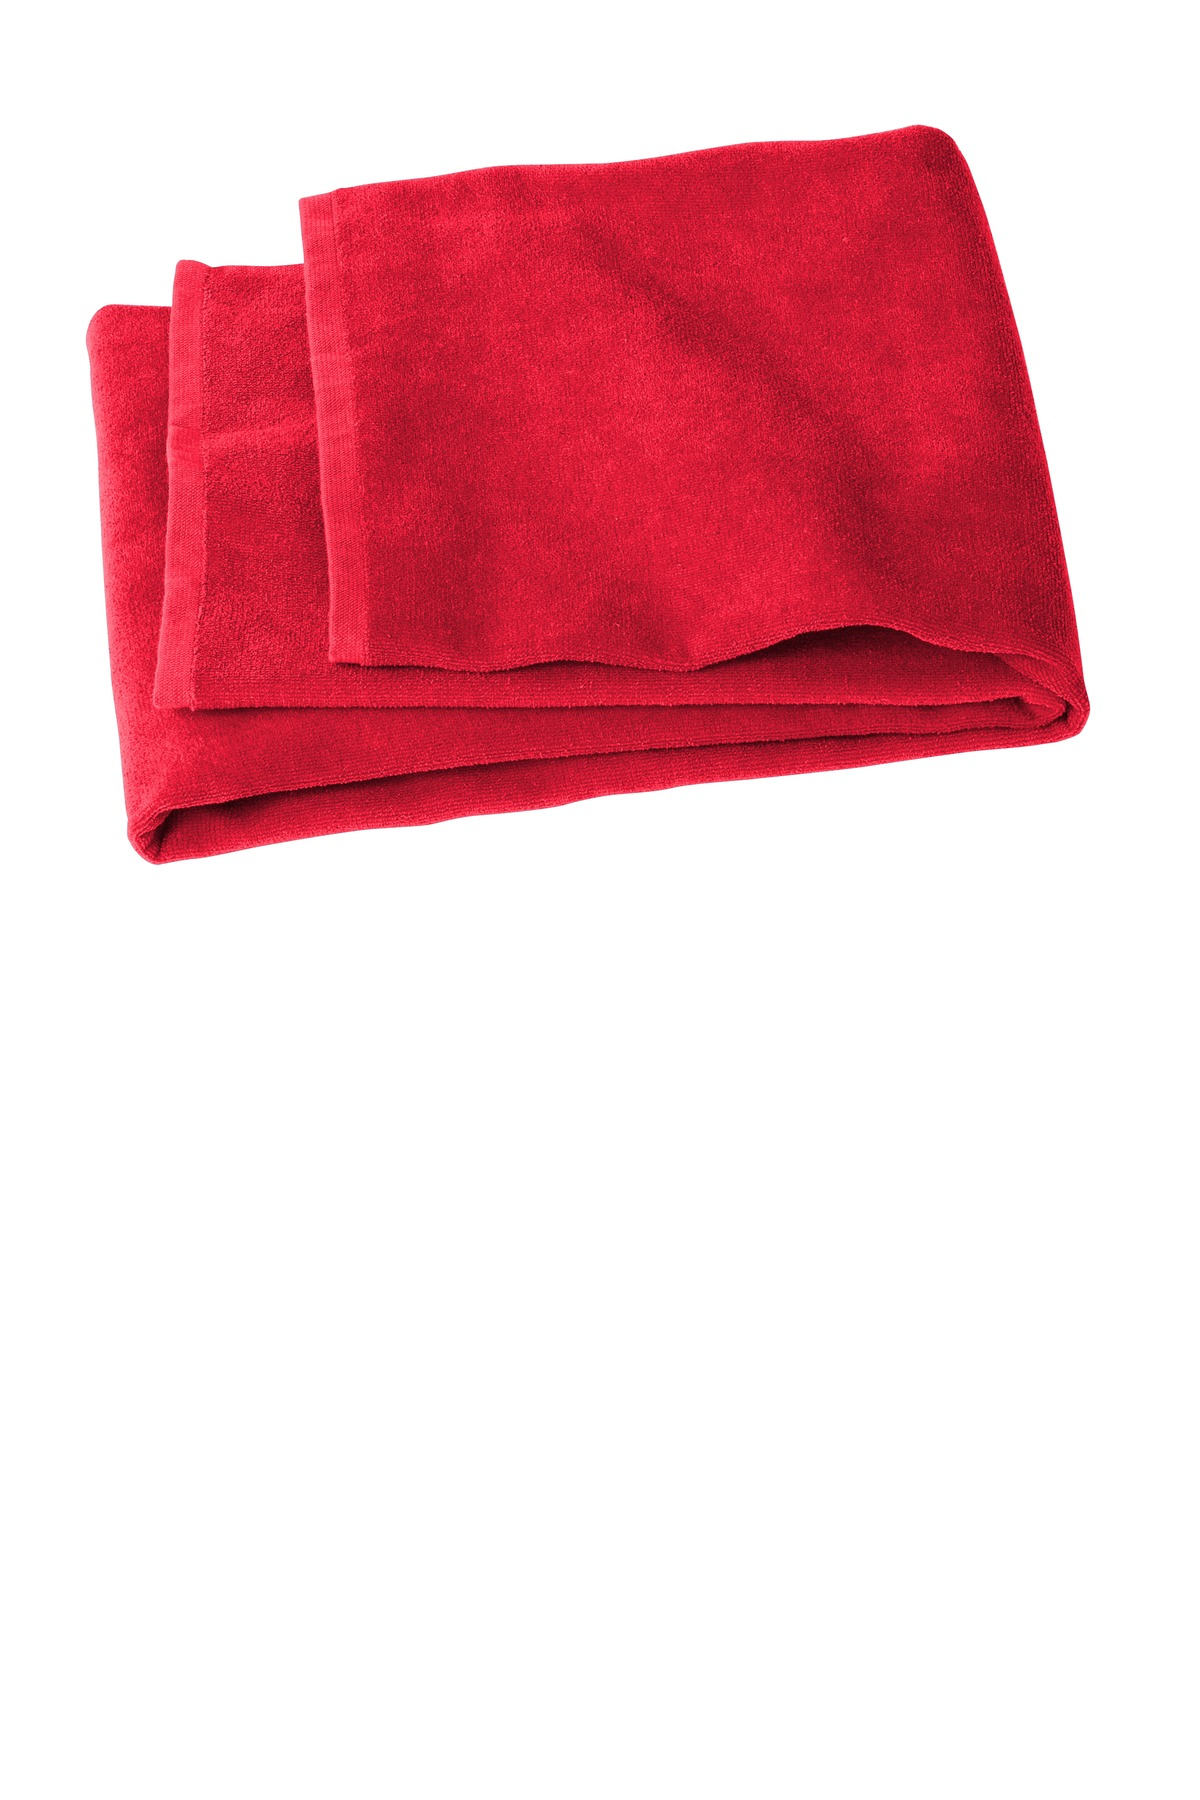 Port Authority  ®  Value Beach Towel PT44 - Red